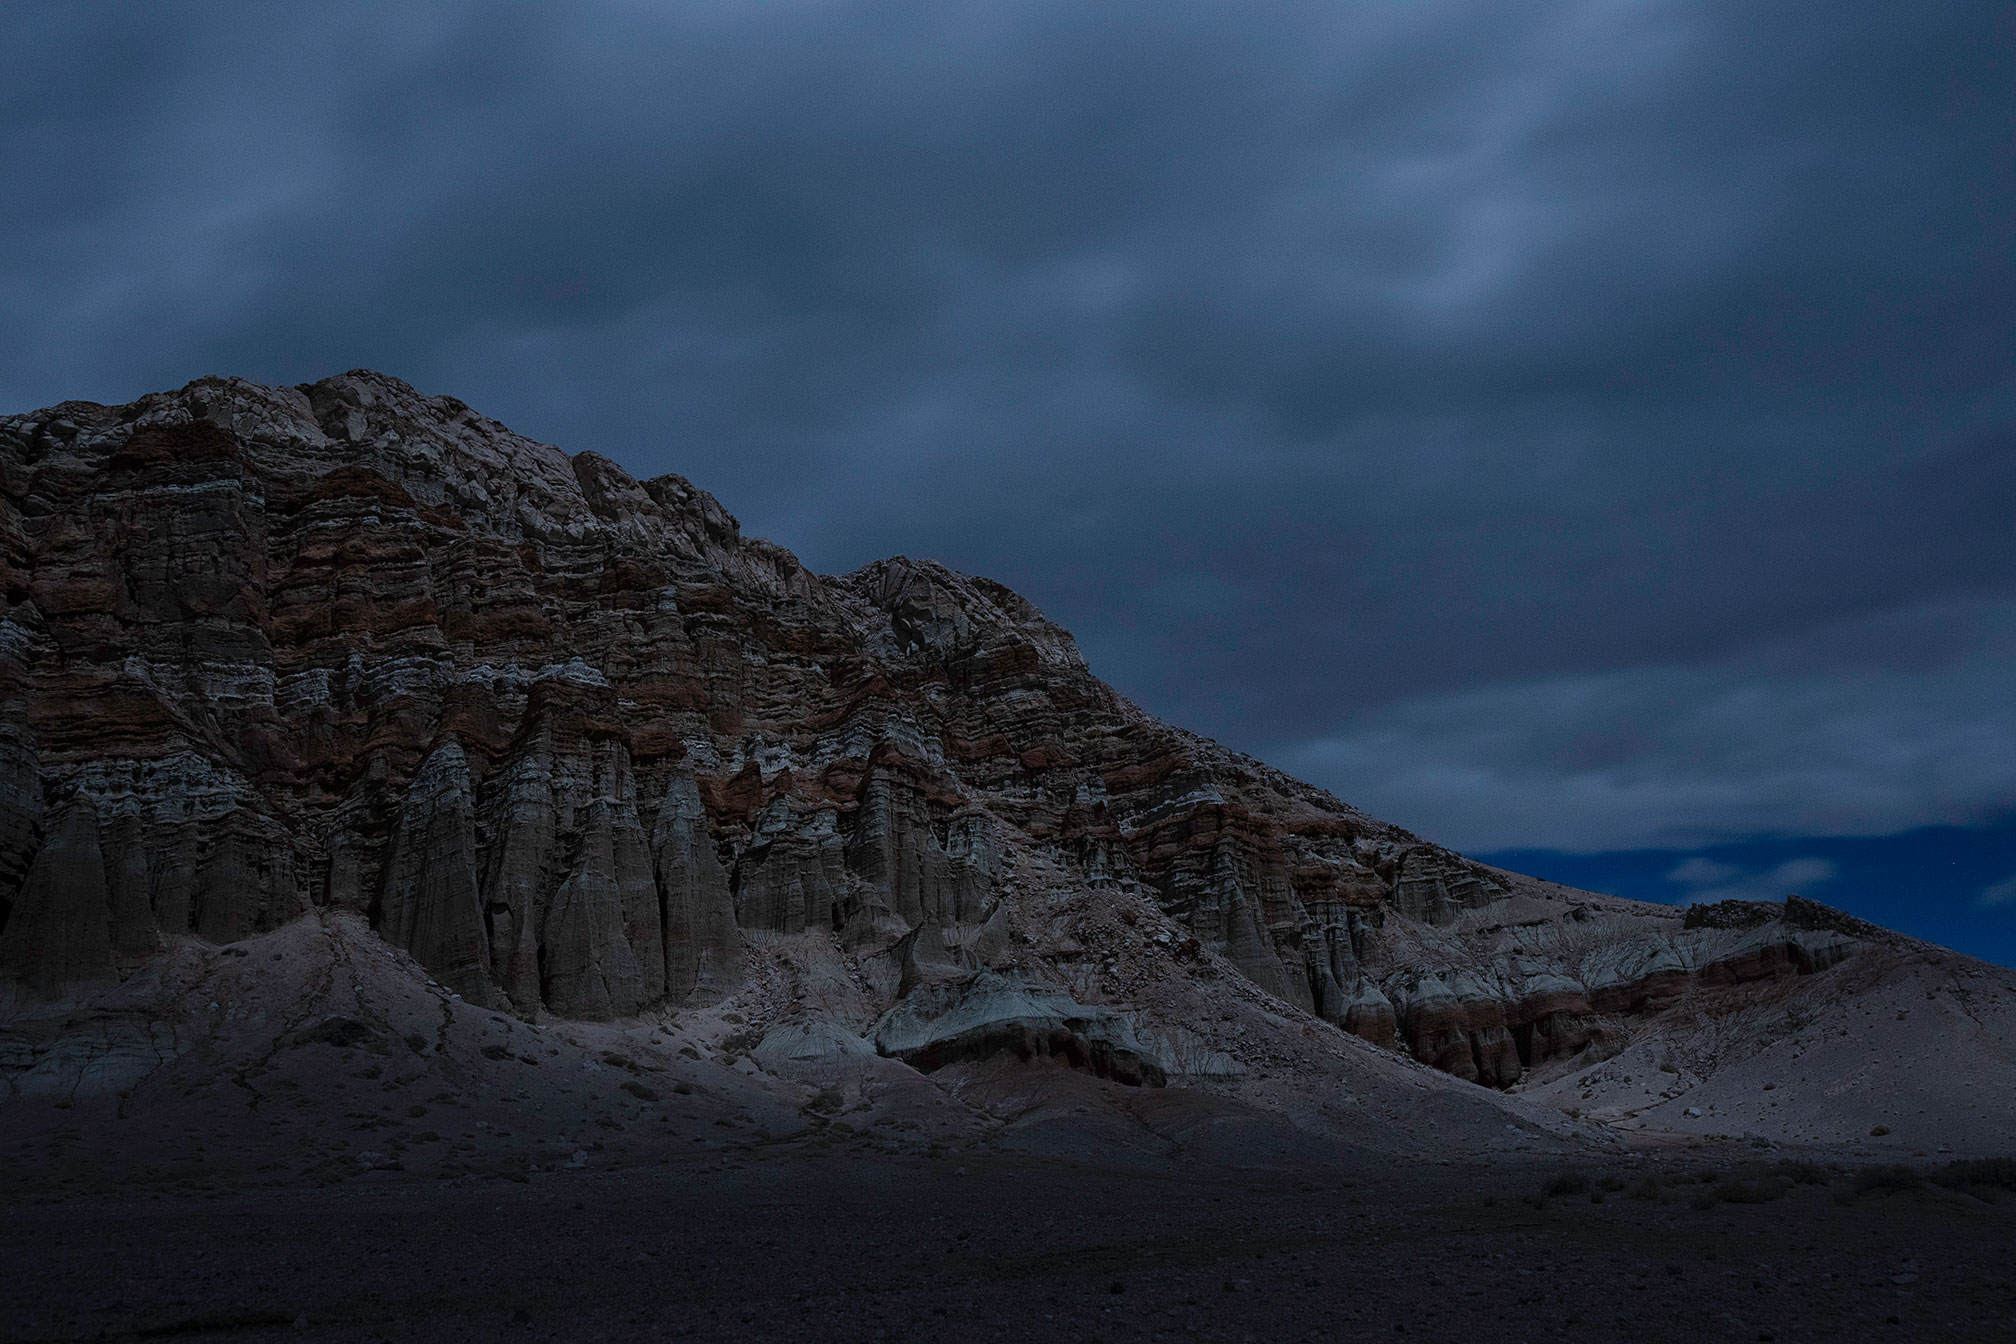 Eroded cliffs under a cloudy night sky.